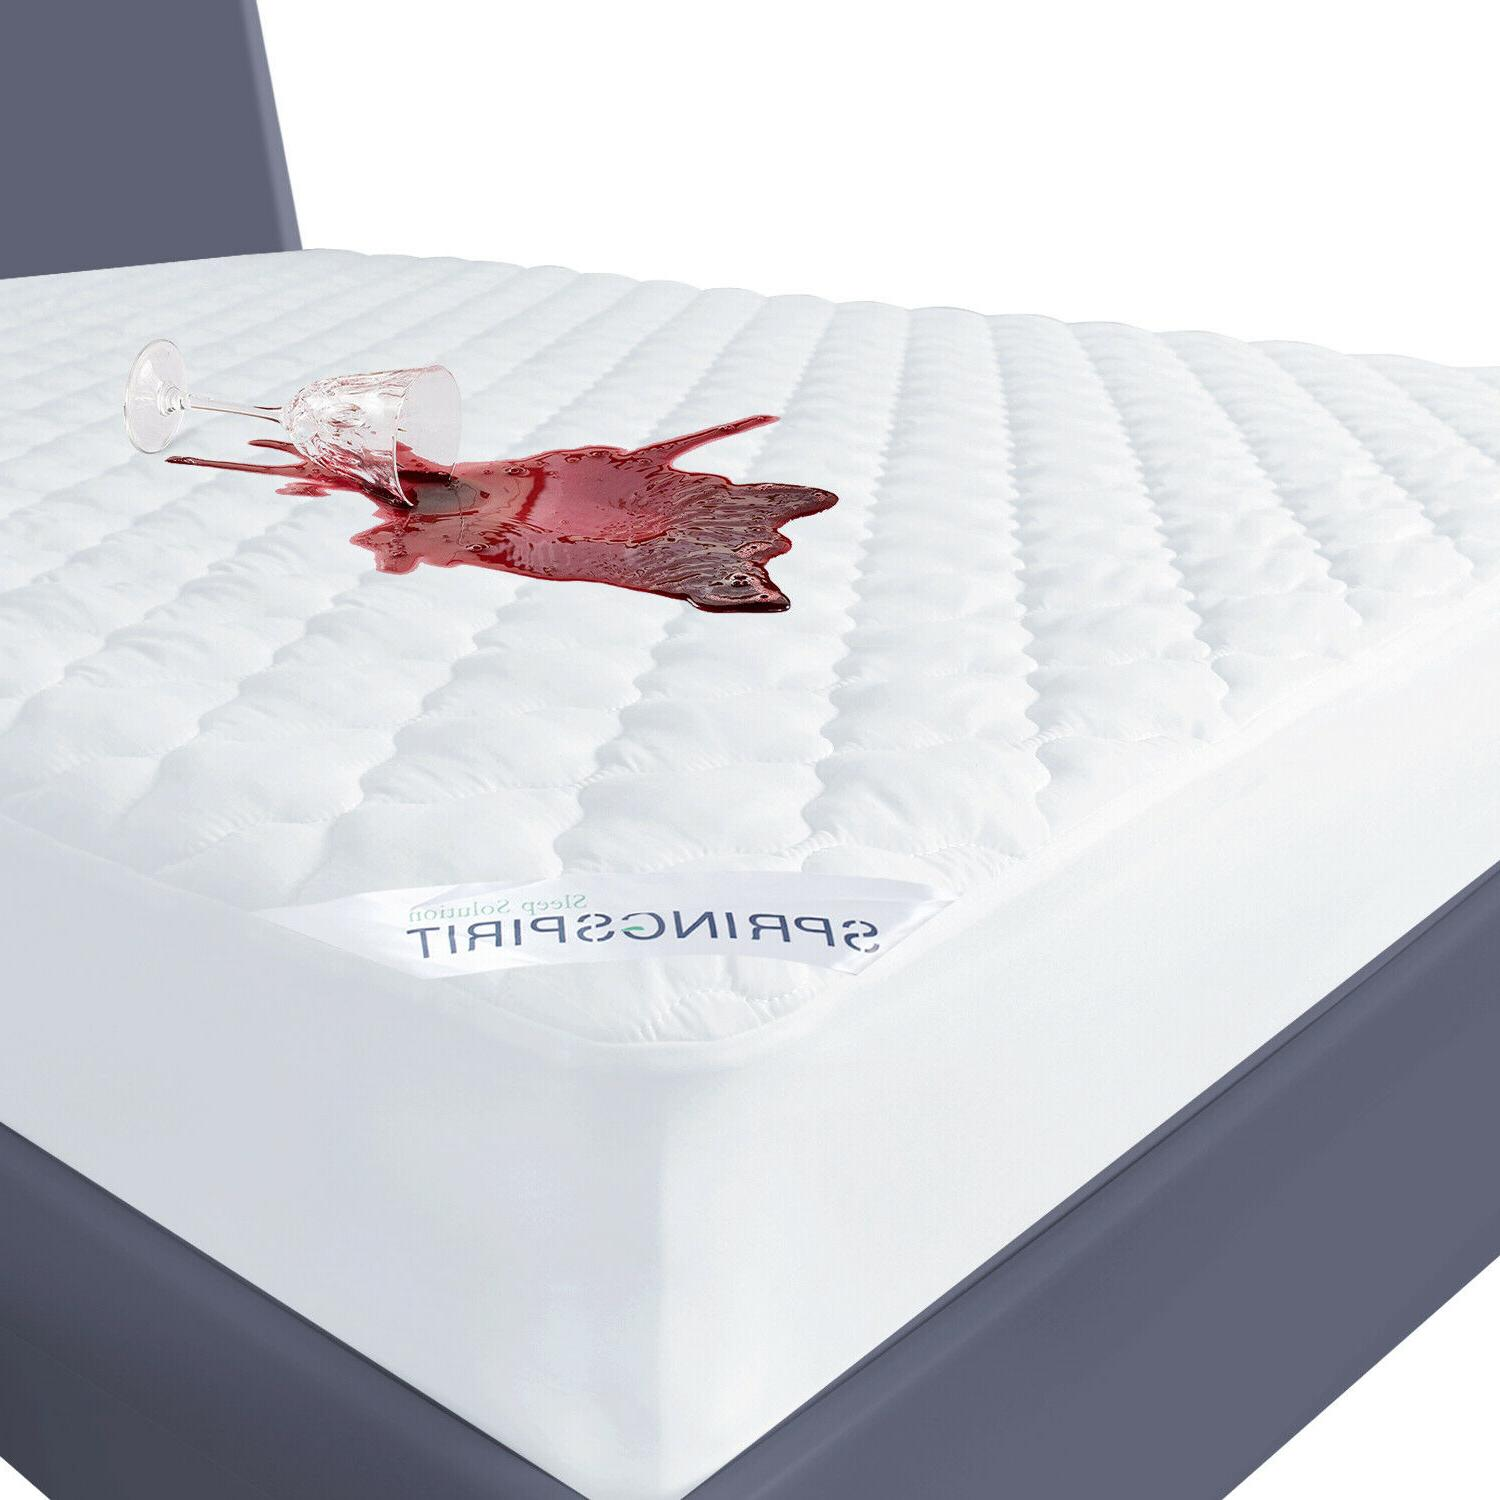 waterproof quilted mattress cover pad protector fitted